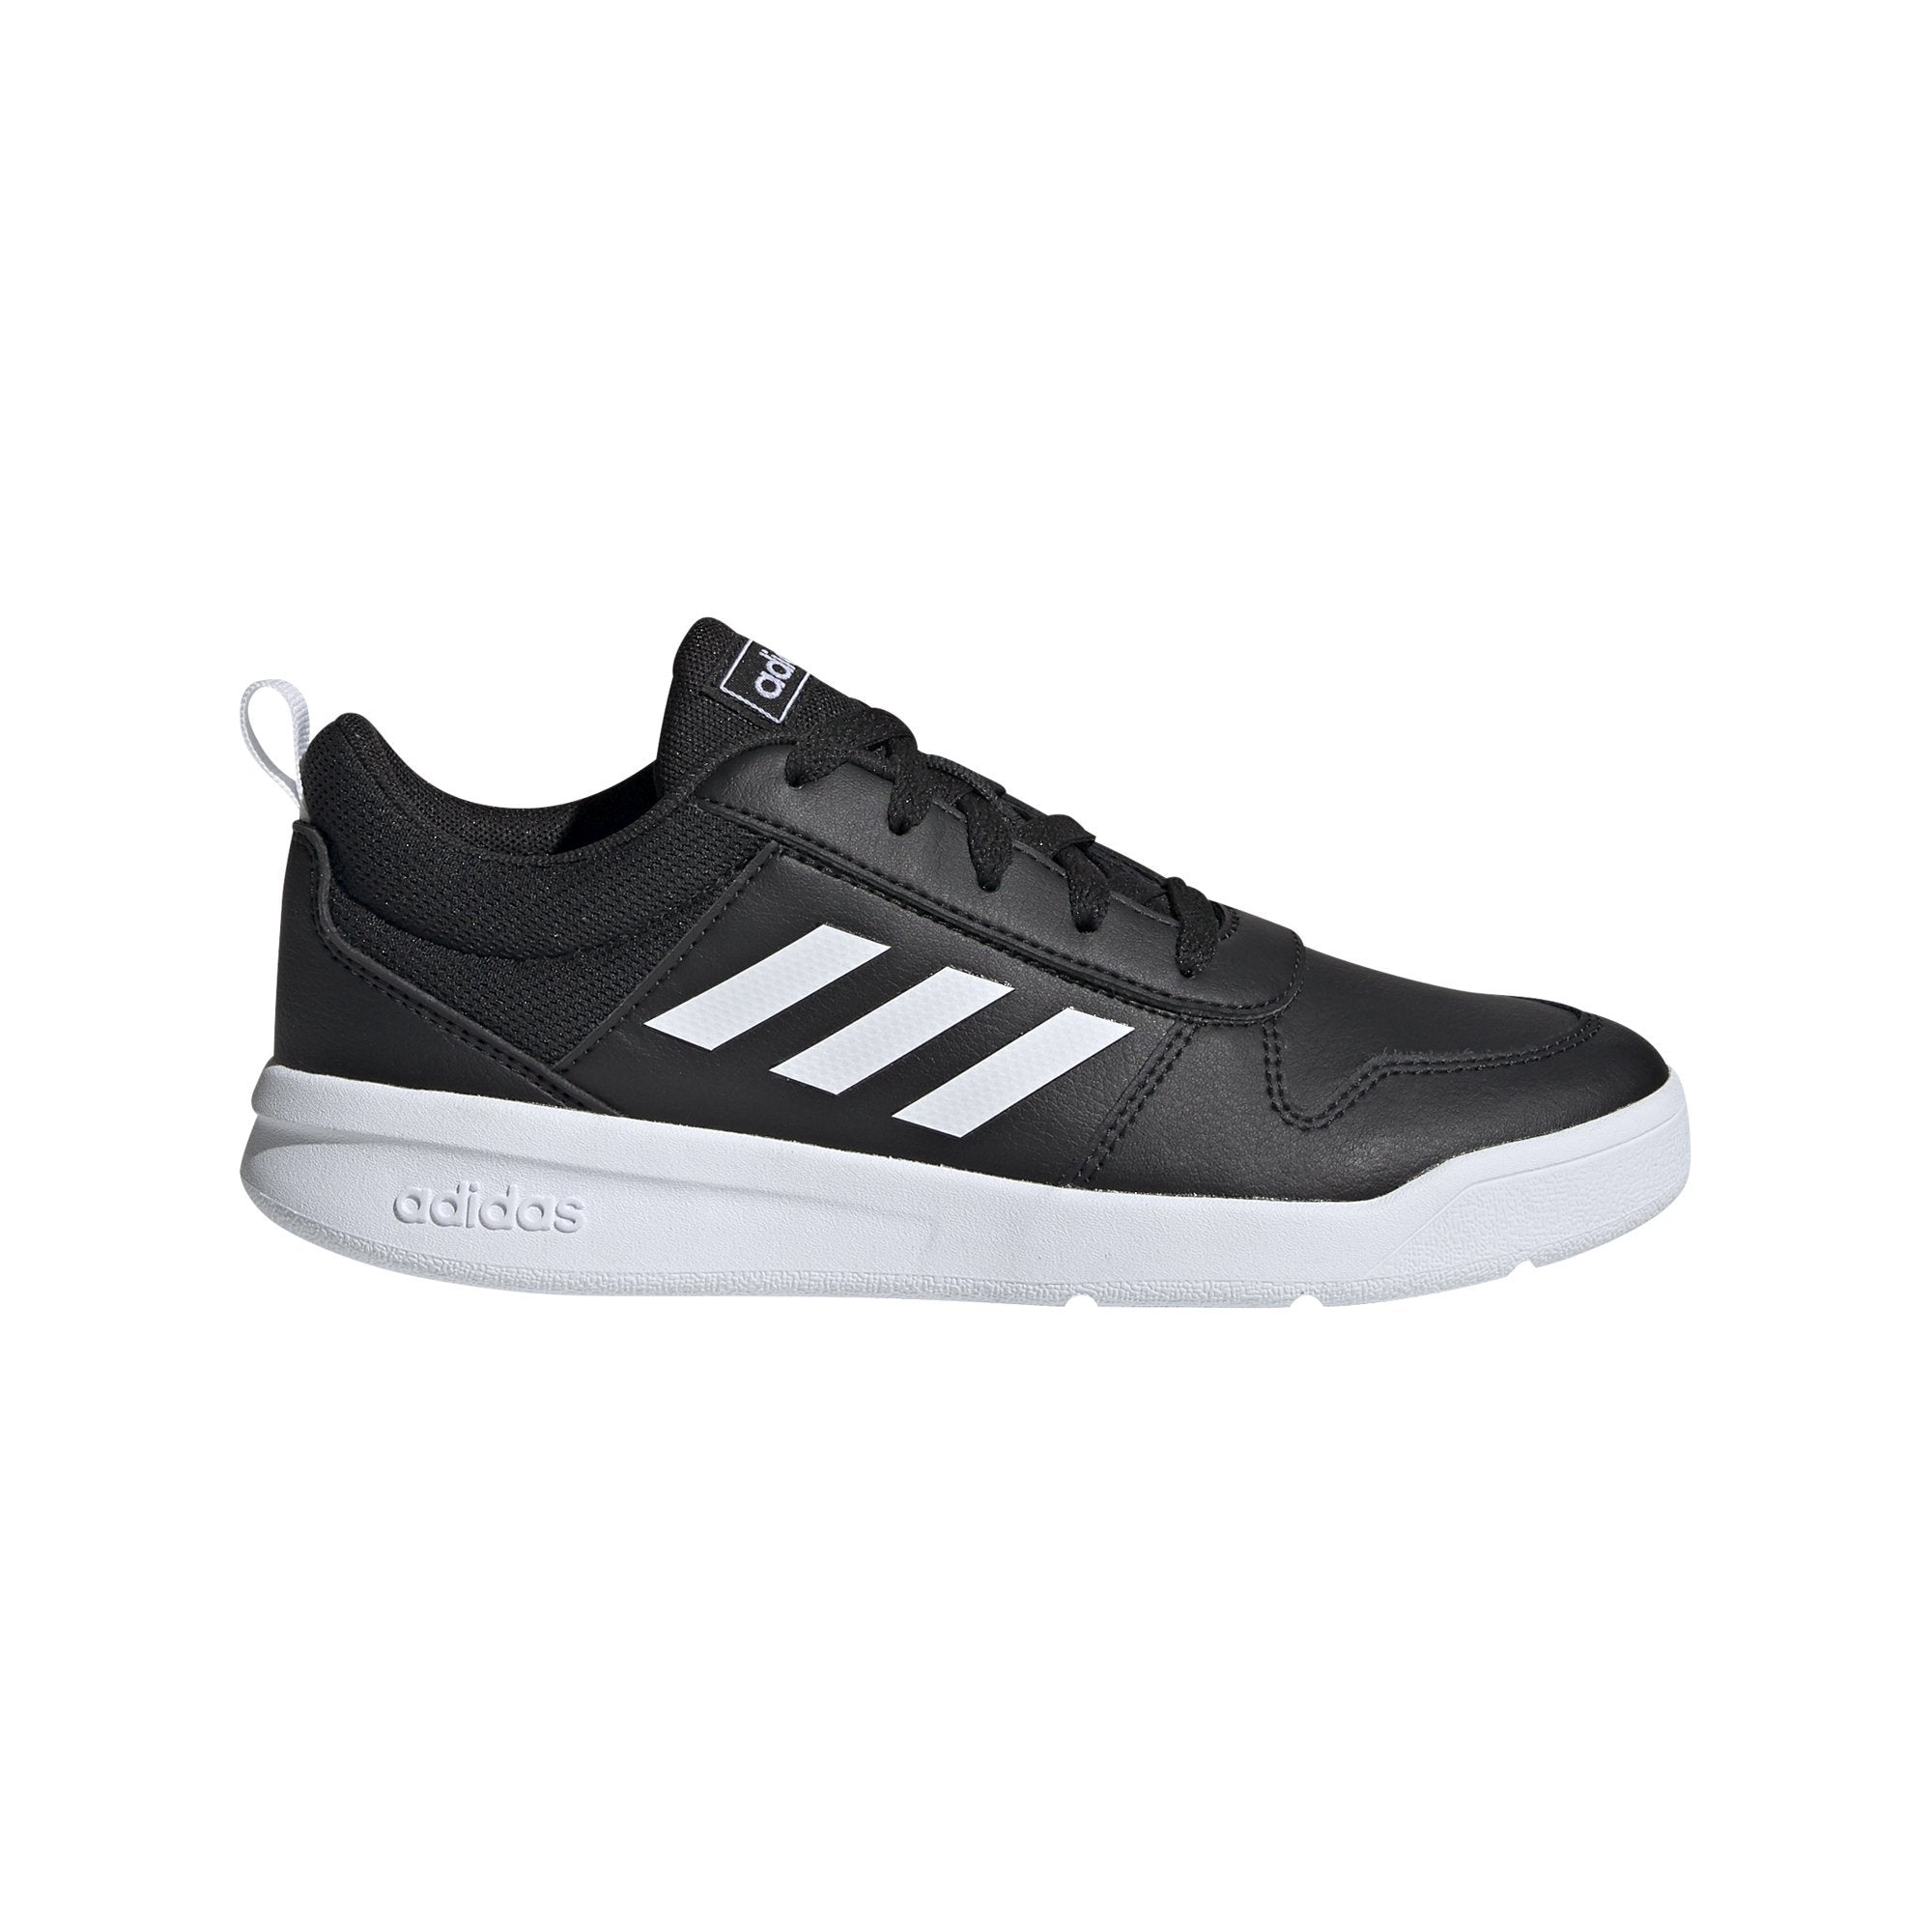 Adidas Kid's Tensaur K - Core Black/Ftwr White/Core Black